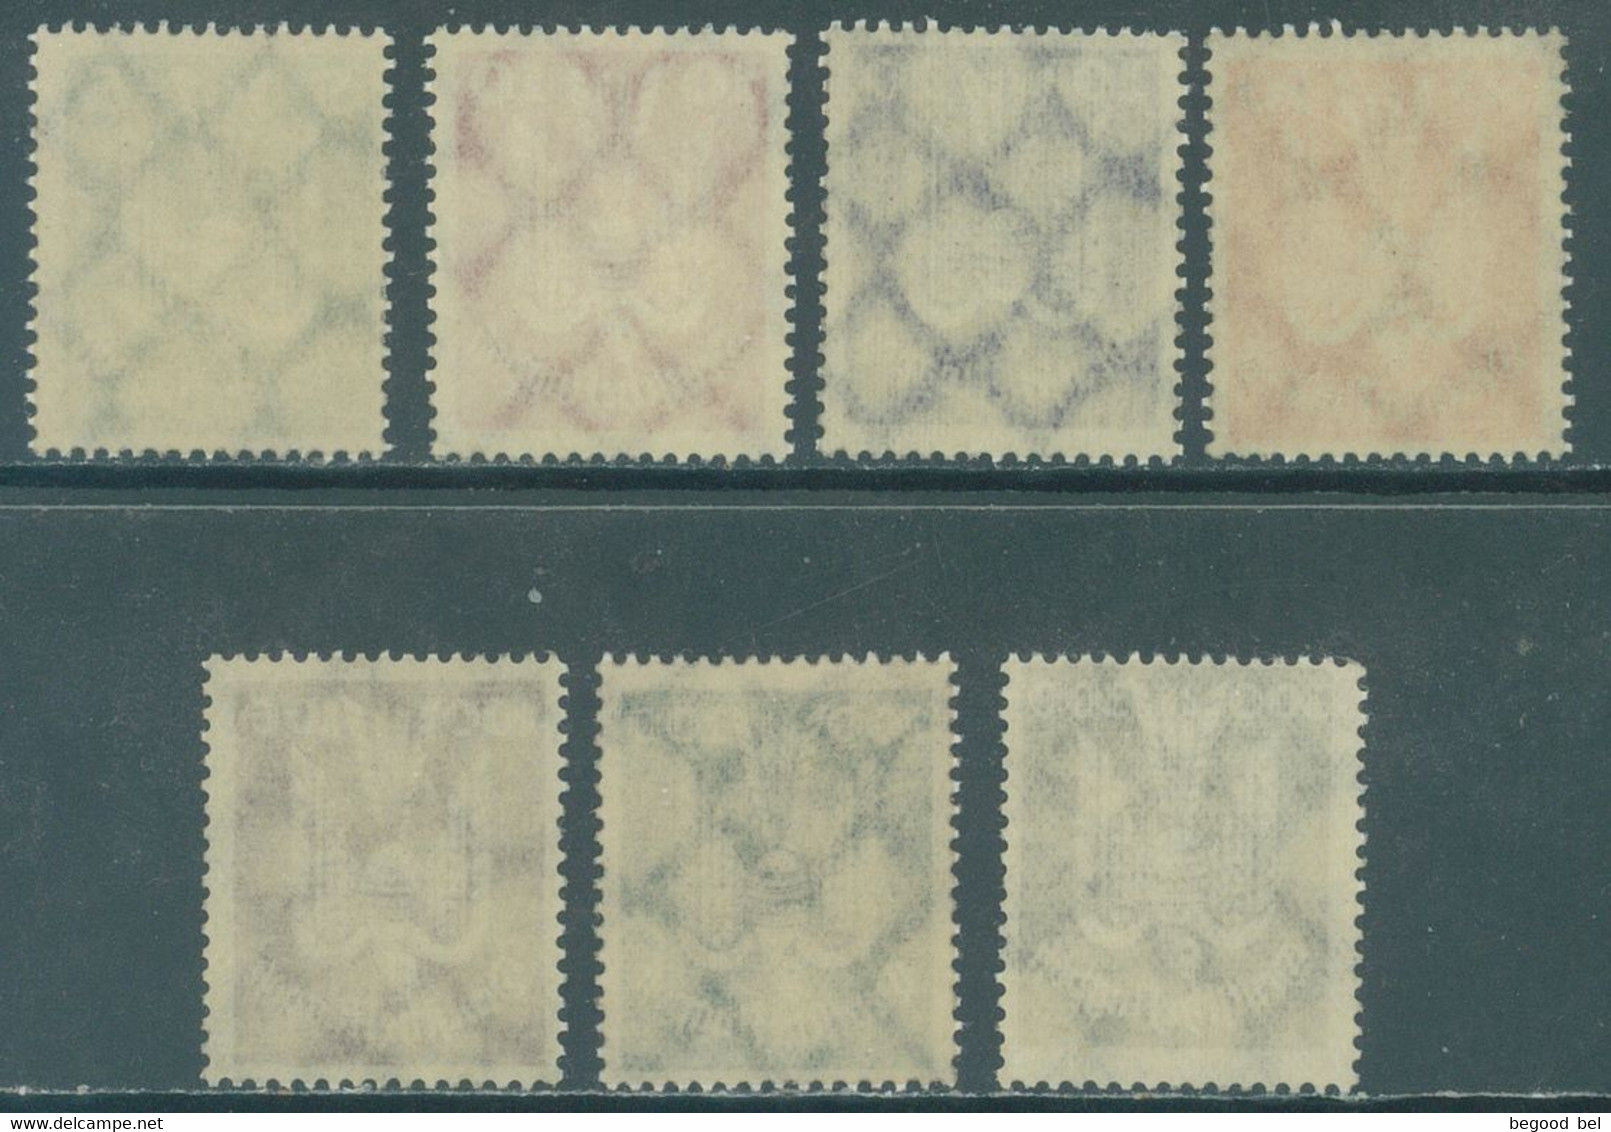 REICH - 1924 - MNH/***- LUXE  - Mi 344-350 Yv PA 20-26 - Lot 22994 - QUOTE 1500.00 EUR !!! - Unused Stamps